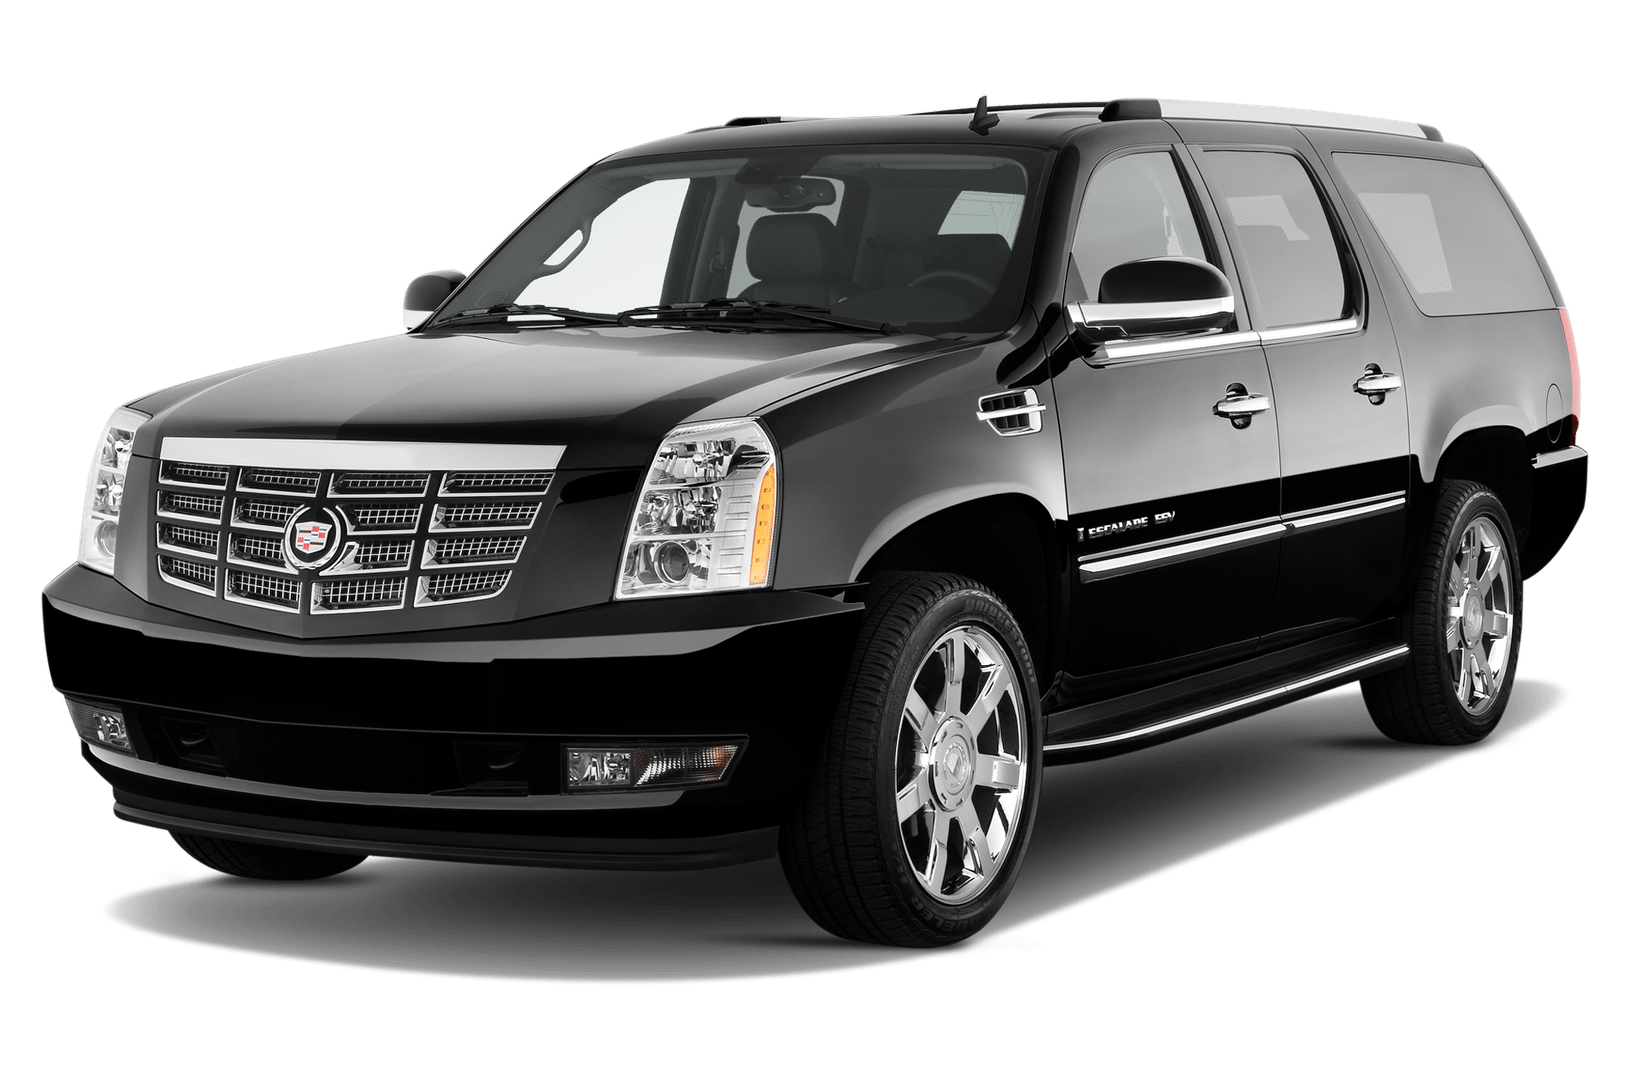 Pin On Limousine Services